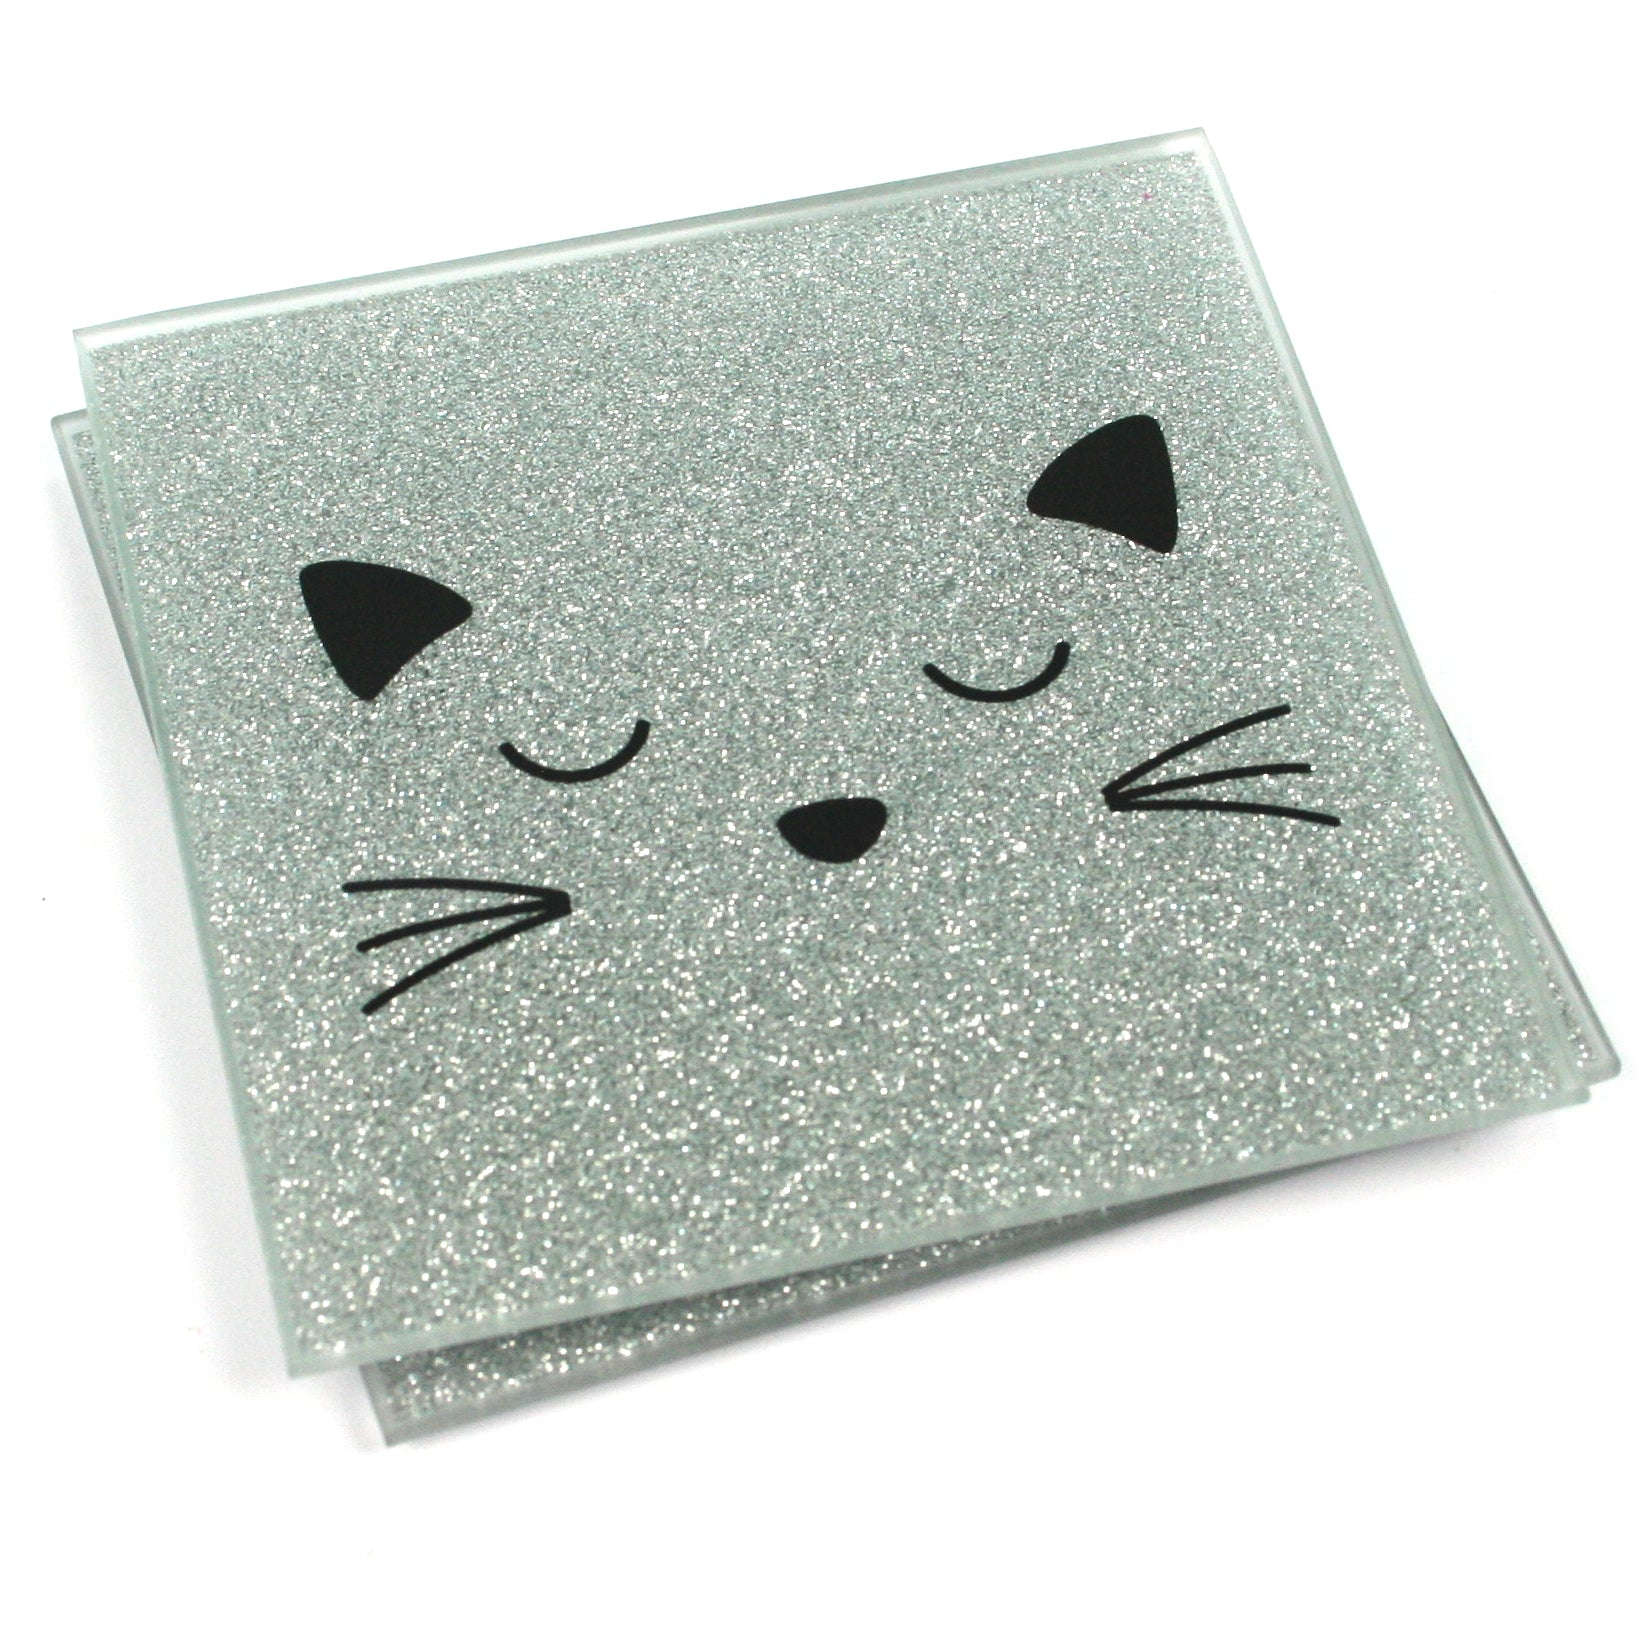 Set of 2 Glass Glitter Black Cat Face Coasters